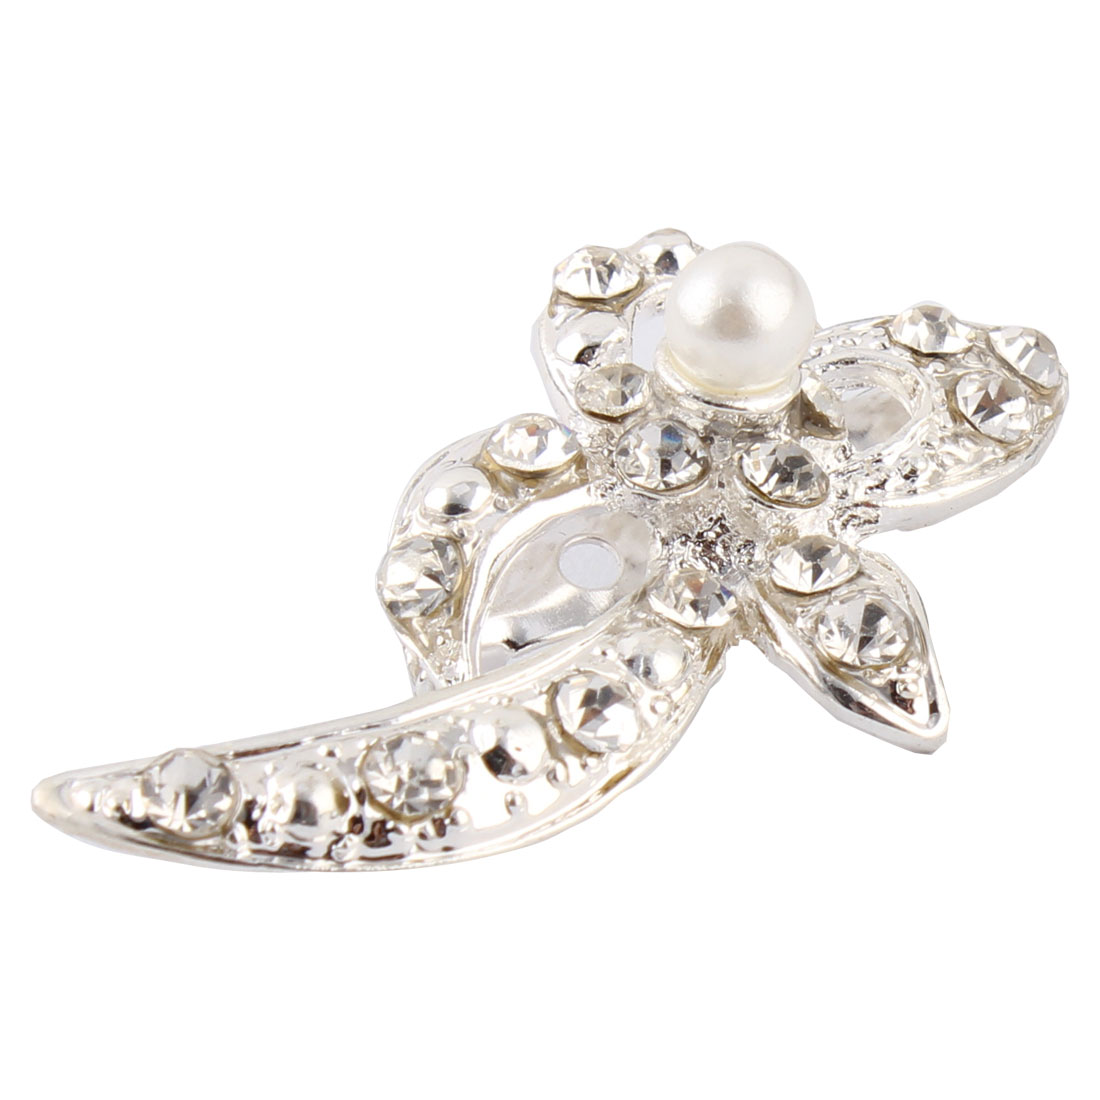 Faux Rhinestone Accent Bowknot Shaped Women Bridal Party Brooch Silver Tone